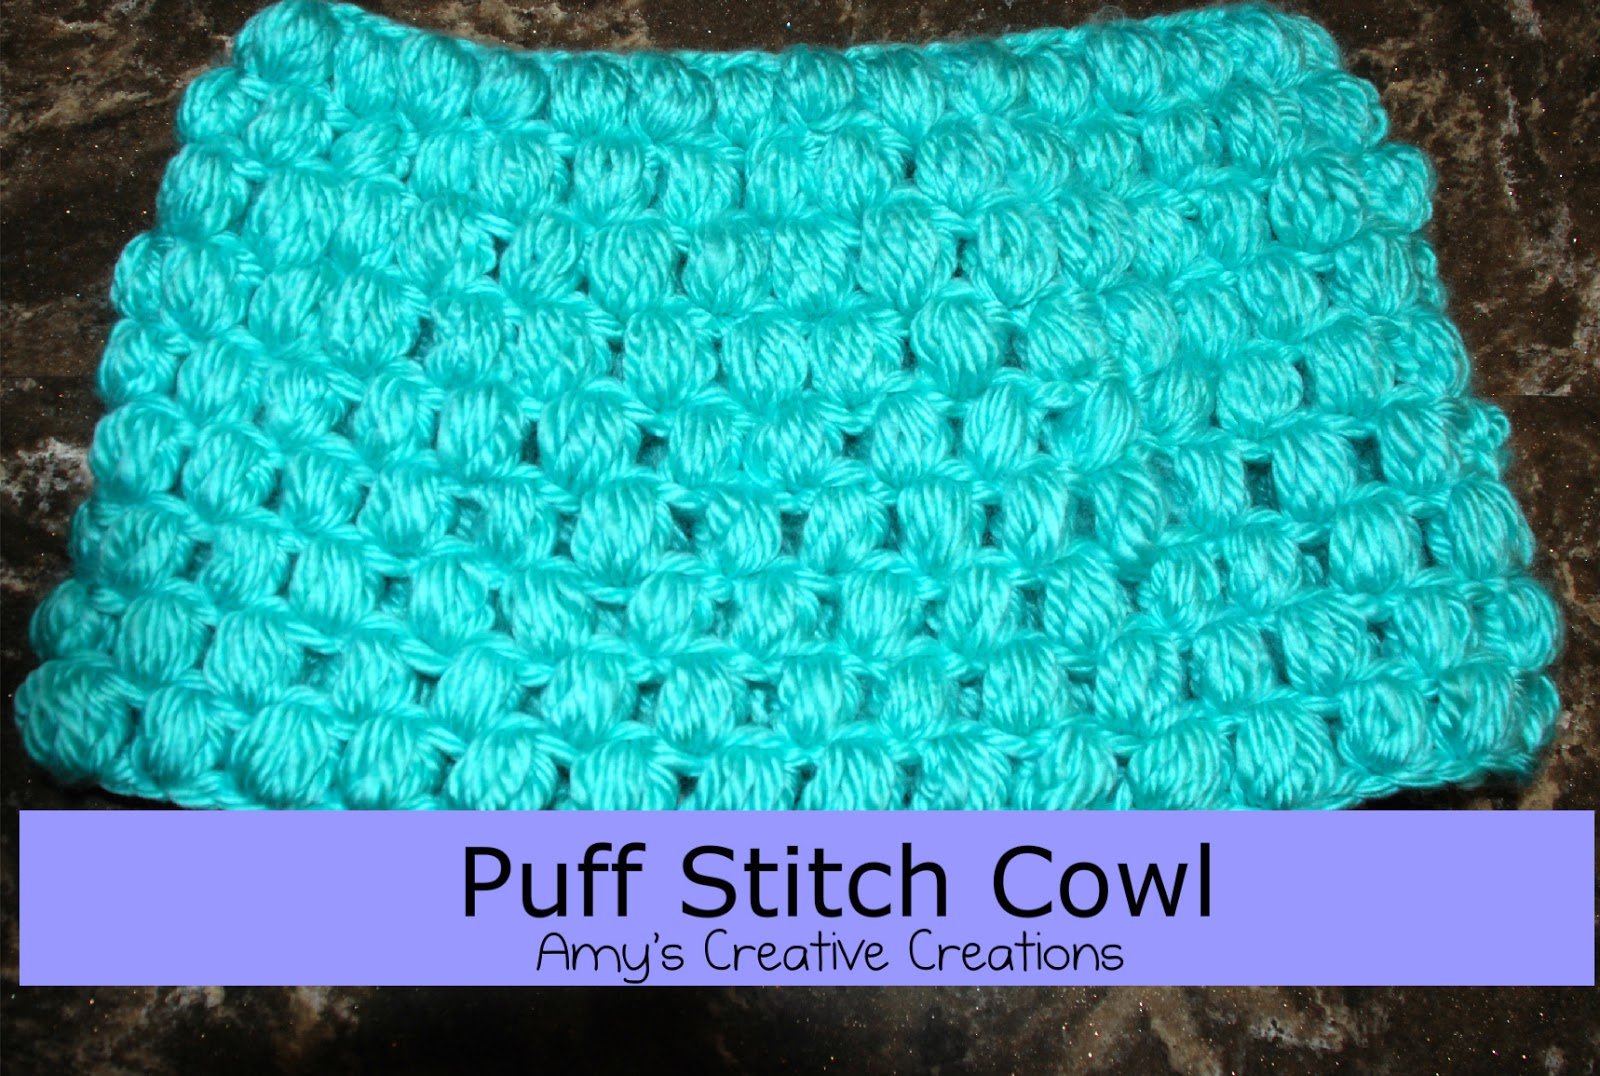 Crochet Stitches Video Puff : Amys Crochet Creative Creations: Crochet Puff Stitch Cowl